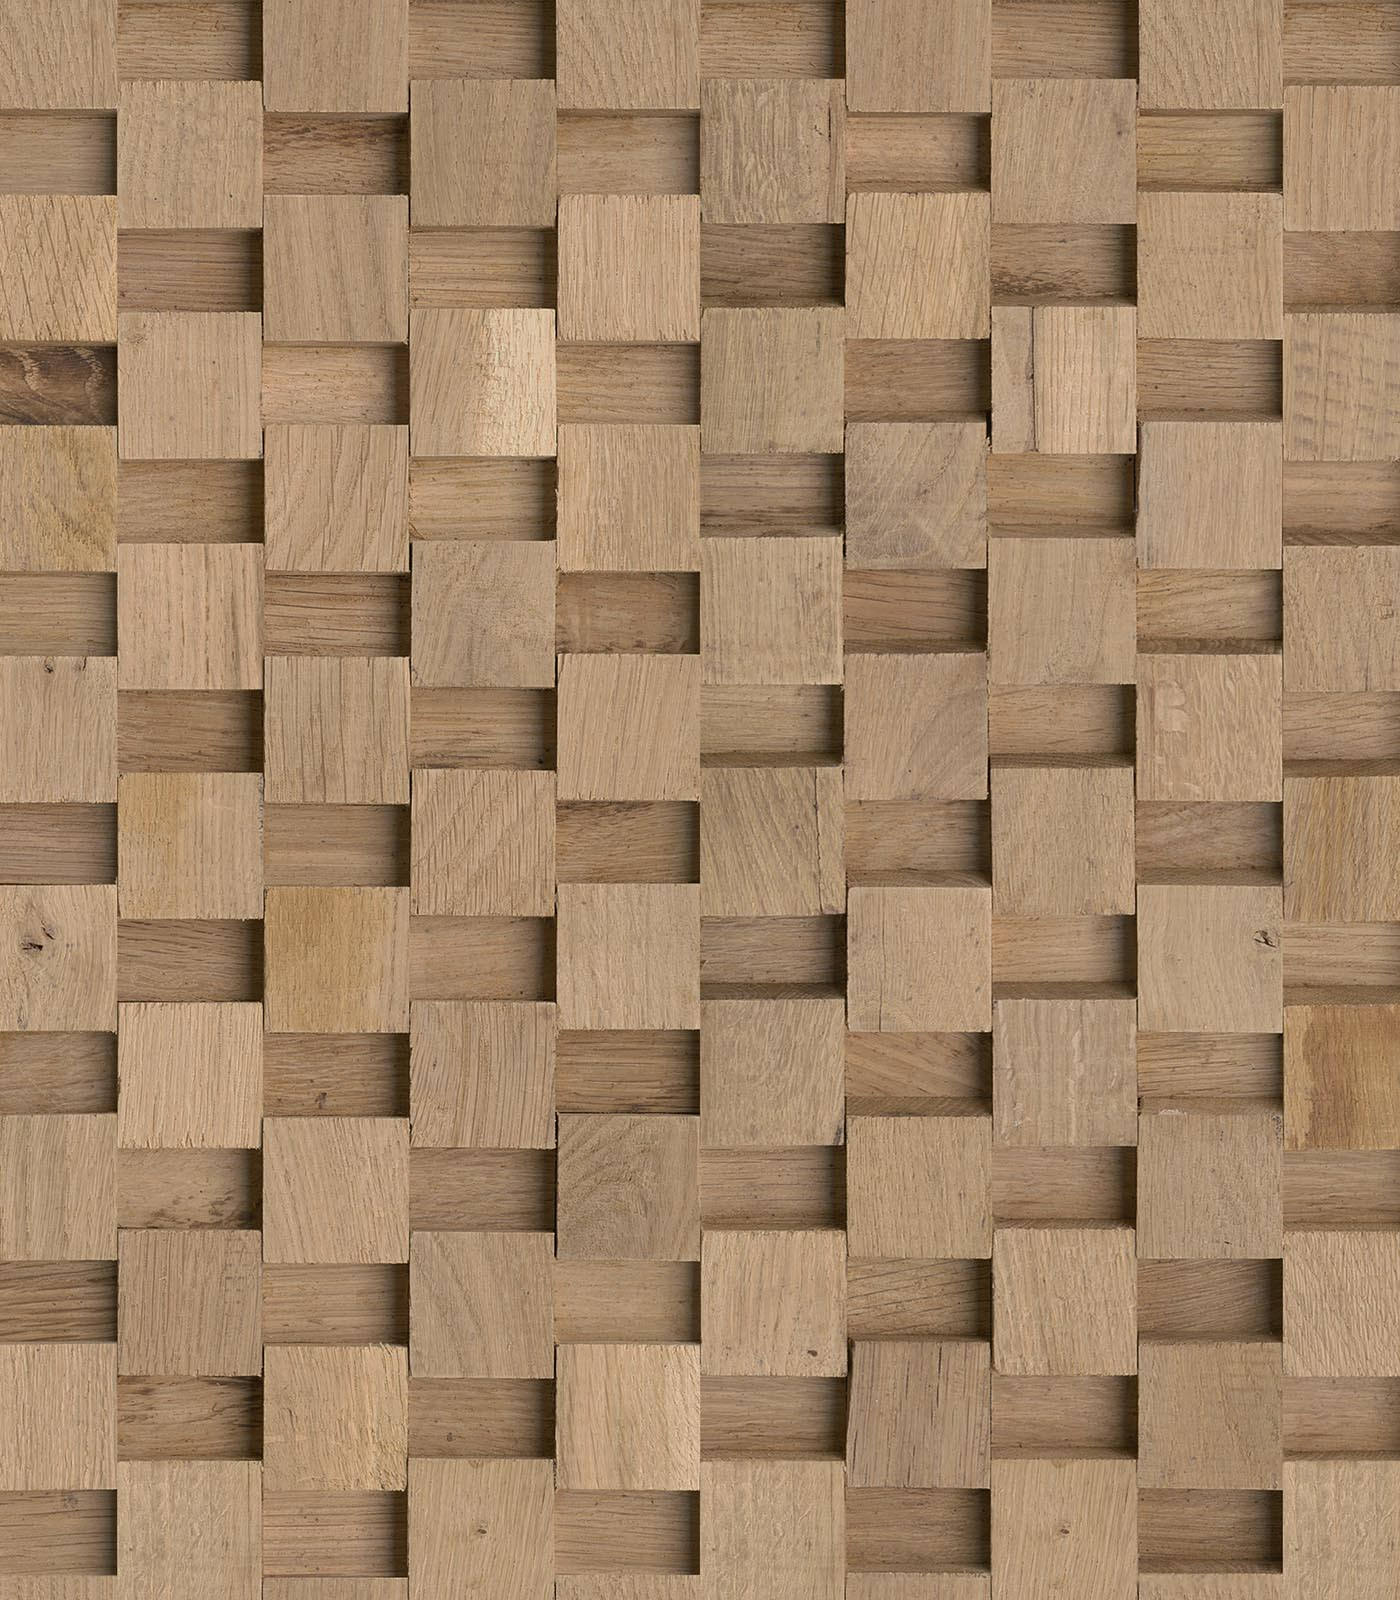 Poseidon-Baroque Collection-Wall panelling-European Oak